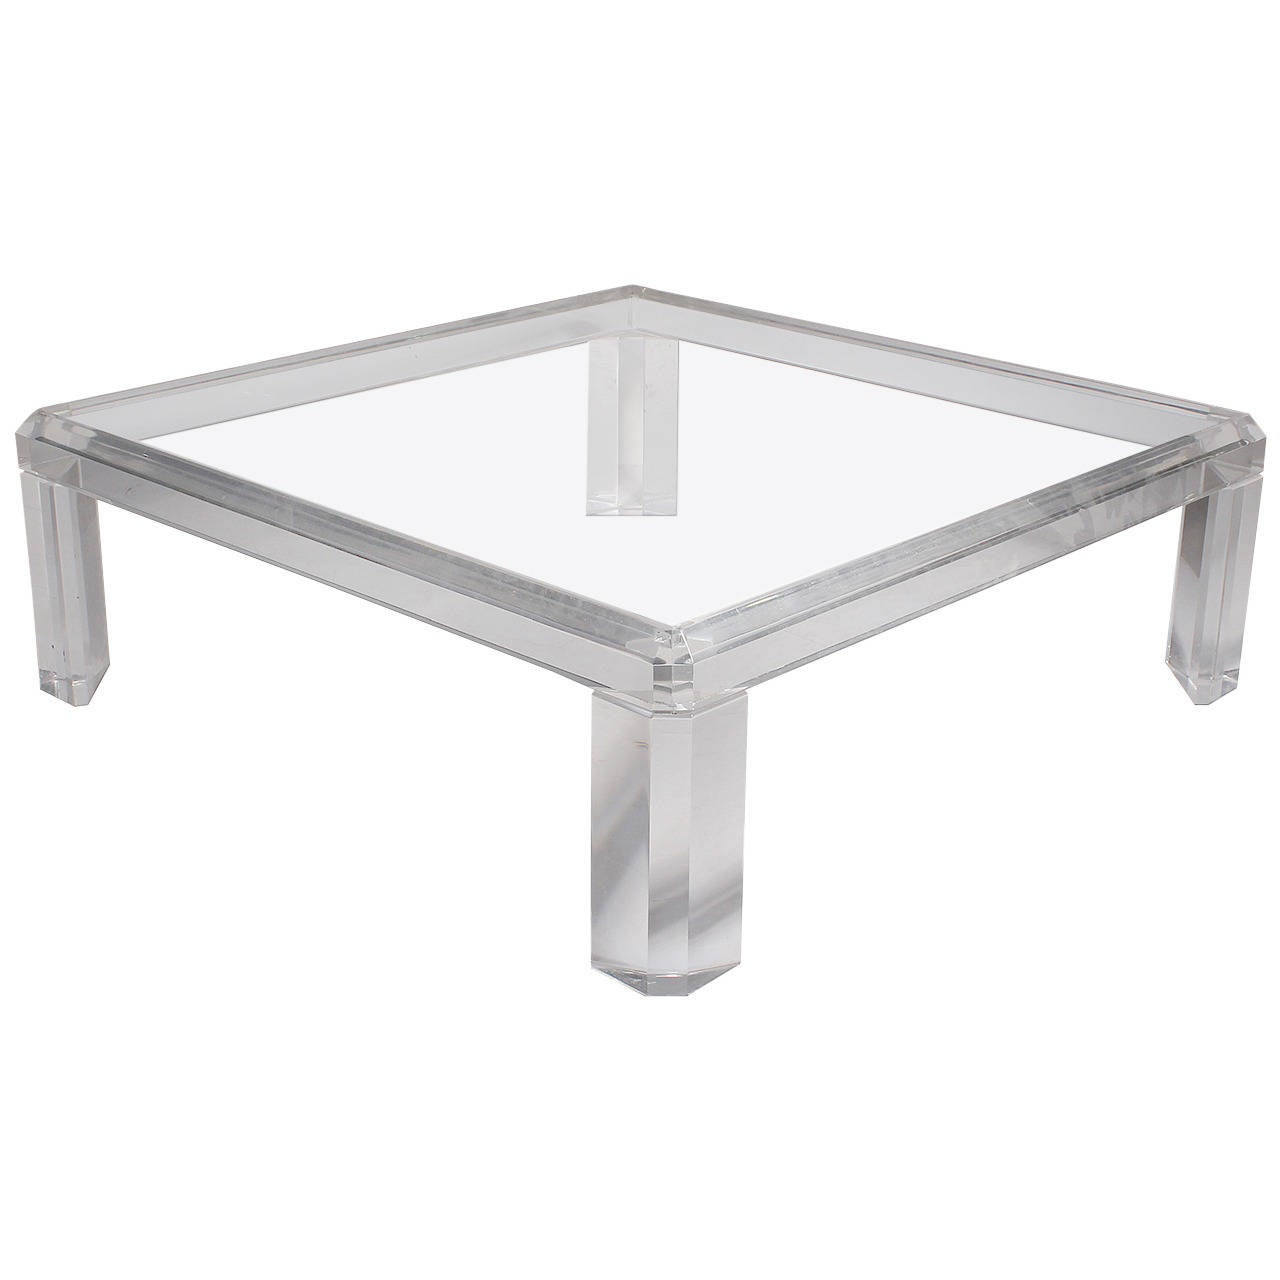 square acrylic or lucite coffee table at 1stdibs